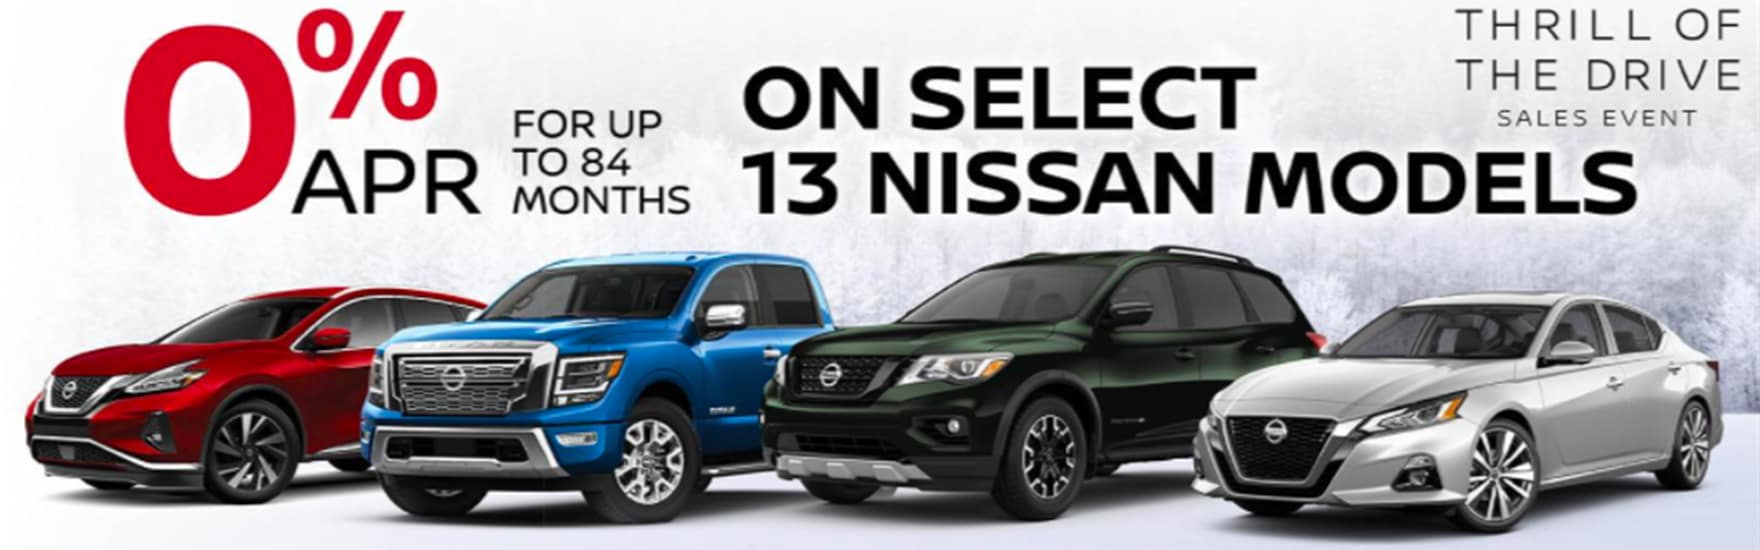 Nissan-of-lumberton-0apr-for-84months